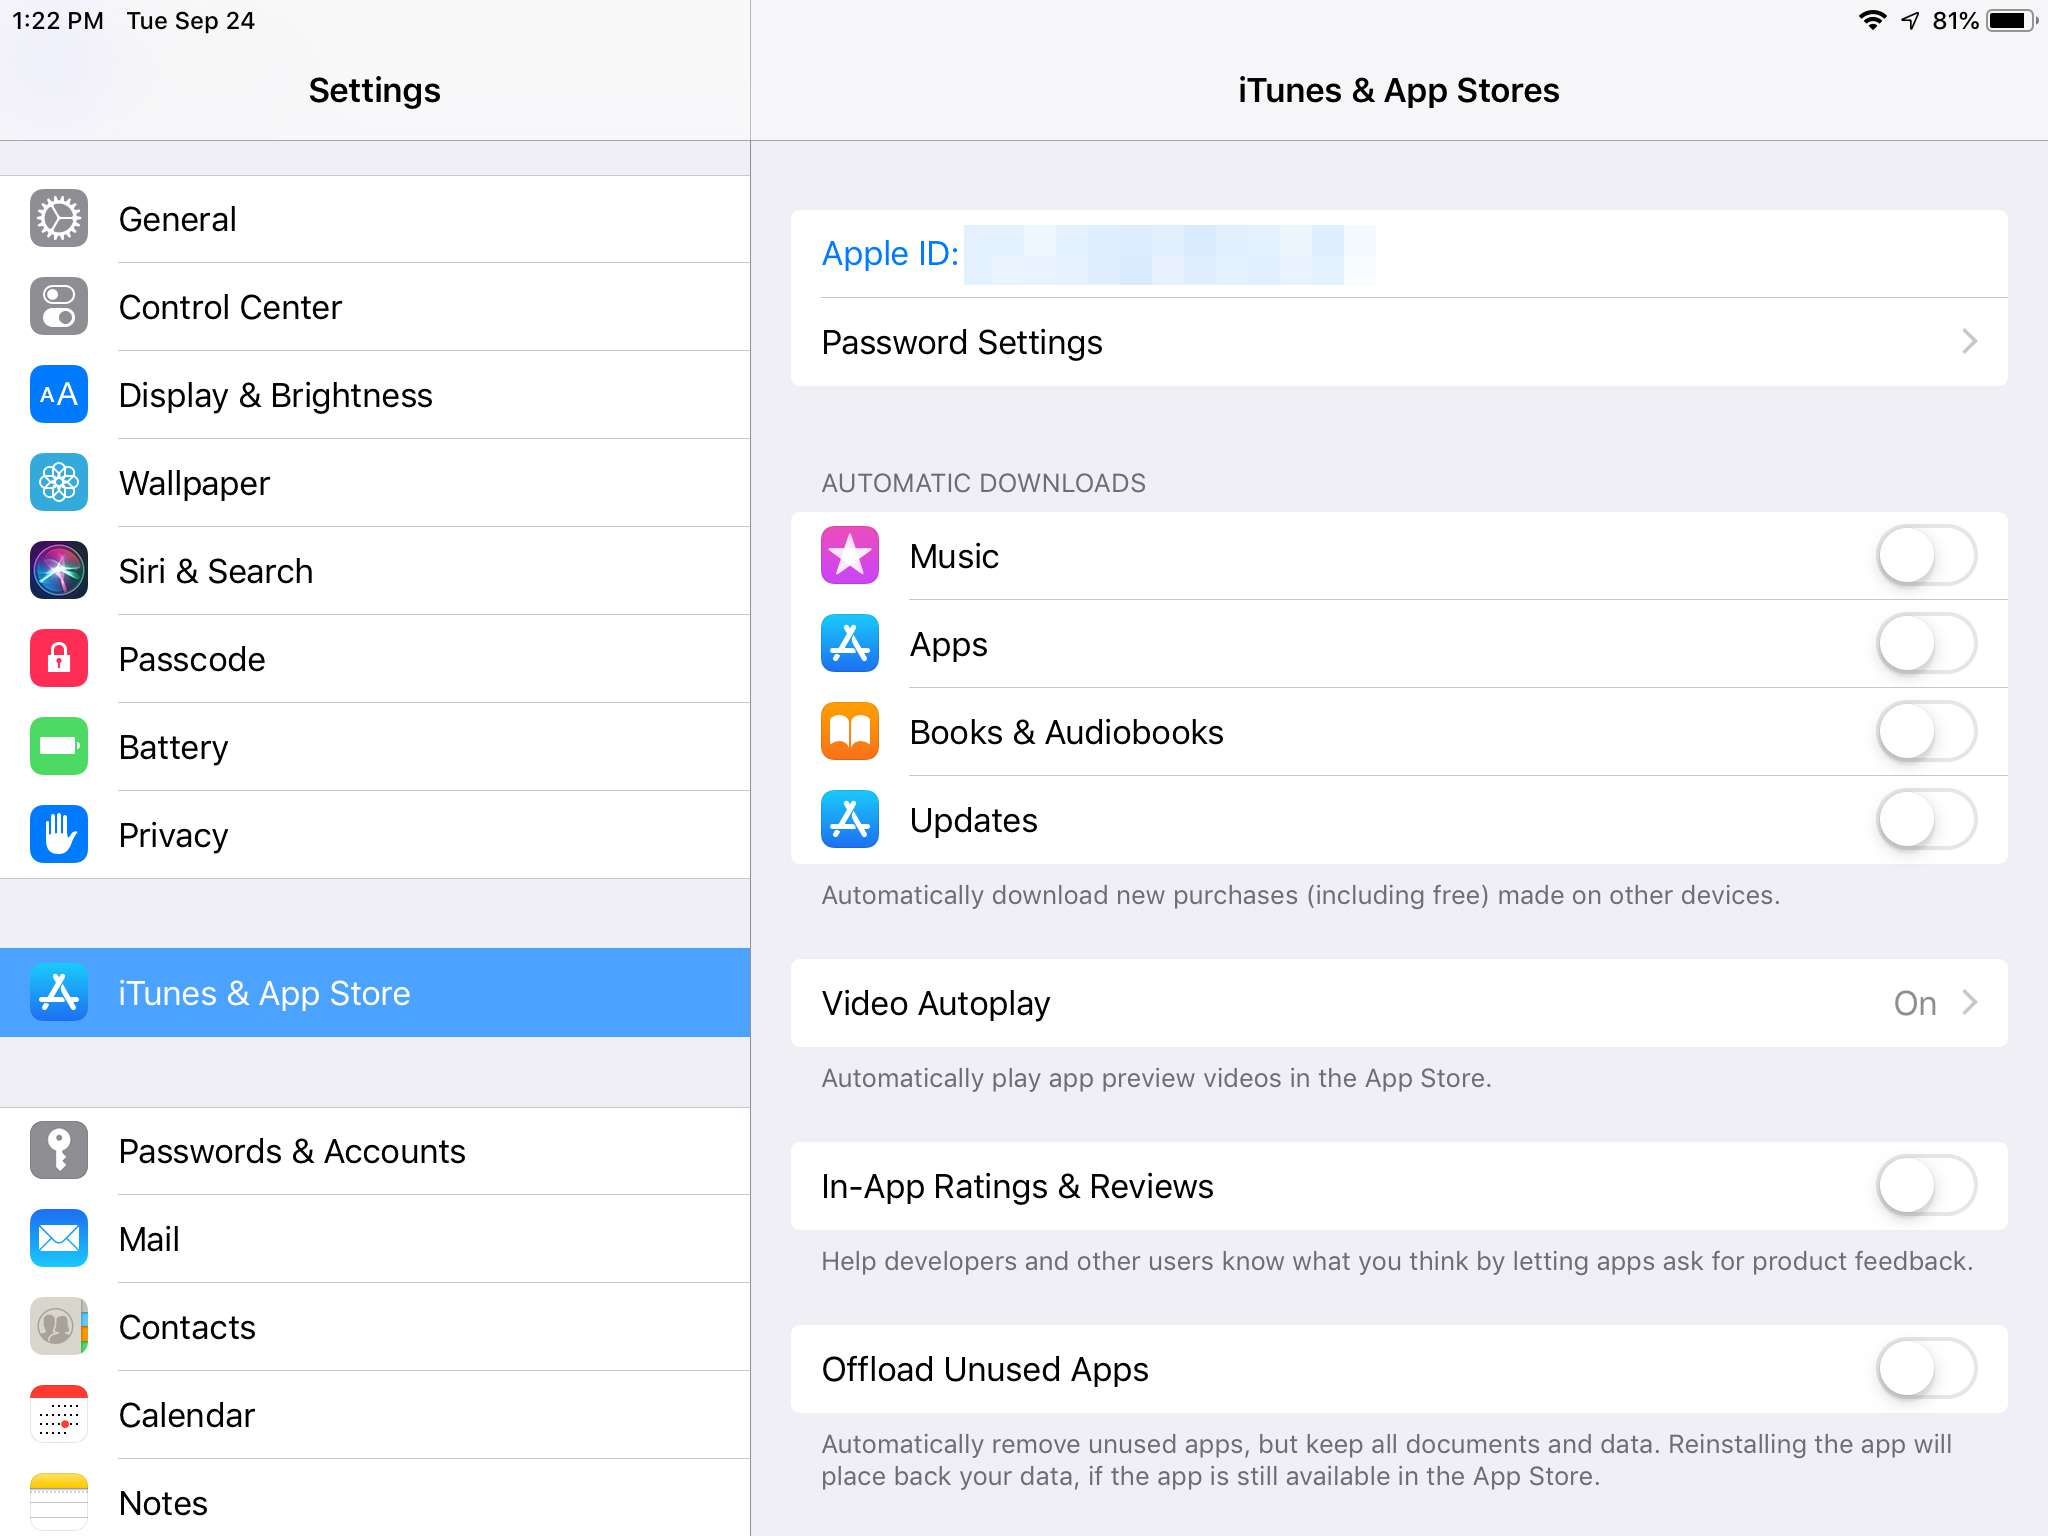 iTunes & App Stores settings in iPad with iOS 12